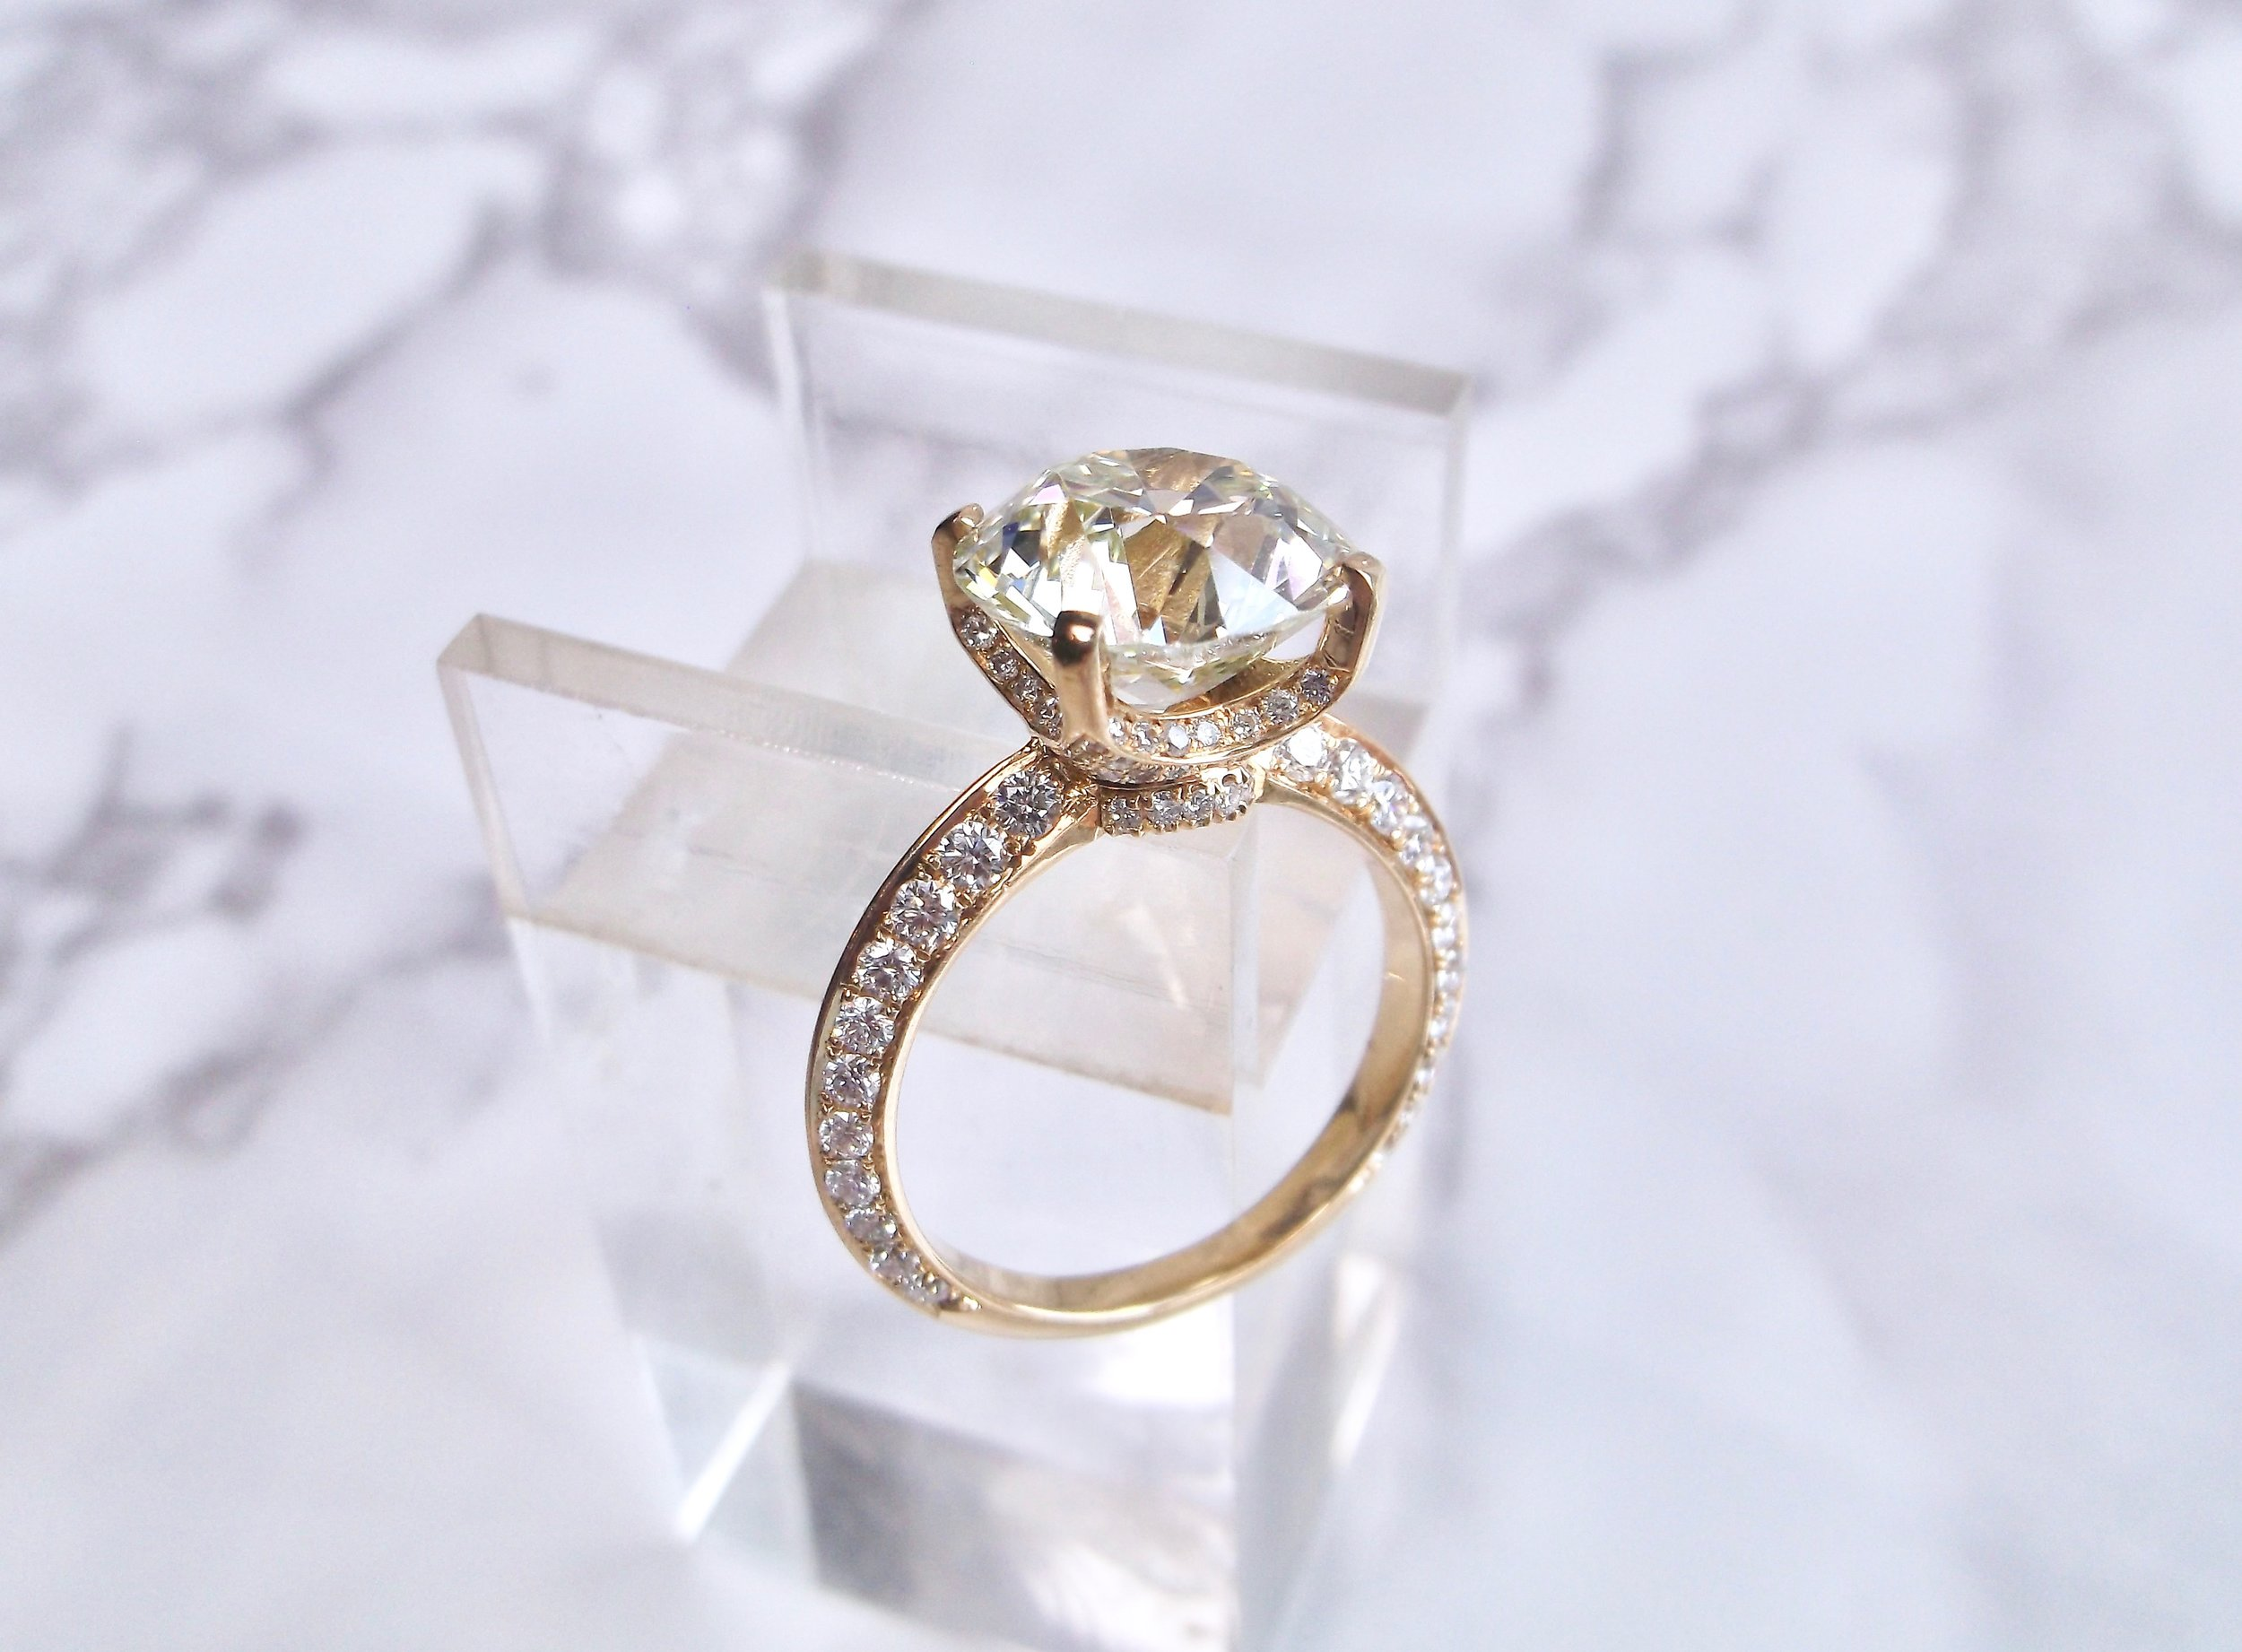 Diamonds on diamonds on diamonds! Every inch of this beauty is covered in diamonds! Featuring a 5.04 carat center Old European cut diamond, this ring has a definite WOW factor! Shop this stunner  HERE .